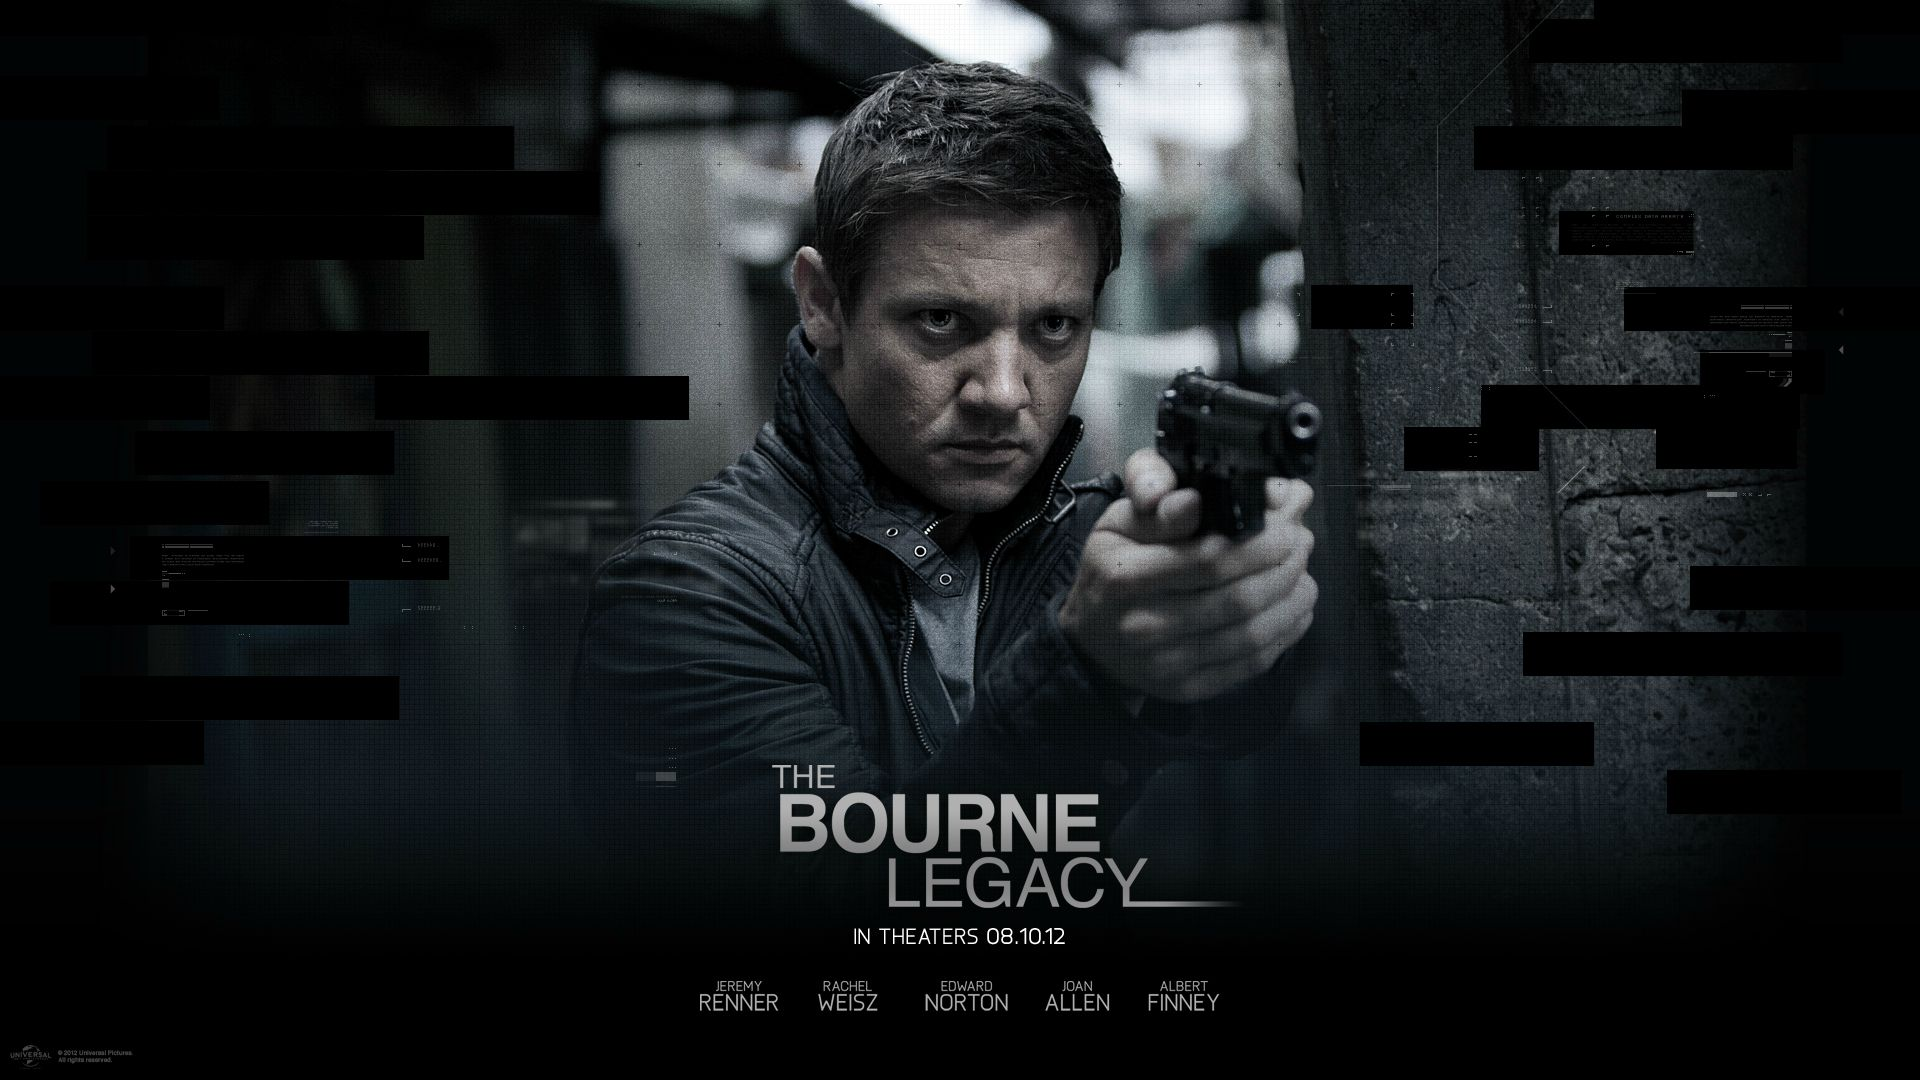 The Bourne Legacy Gets Some New Banners